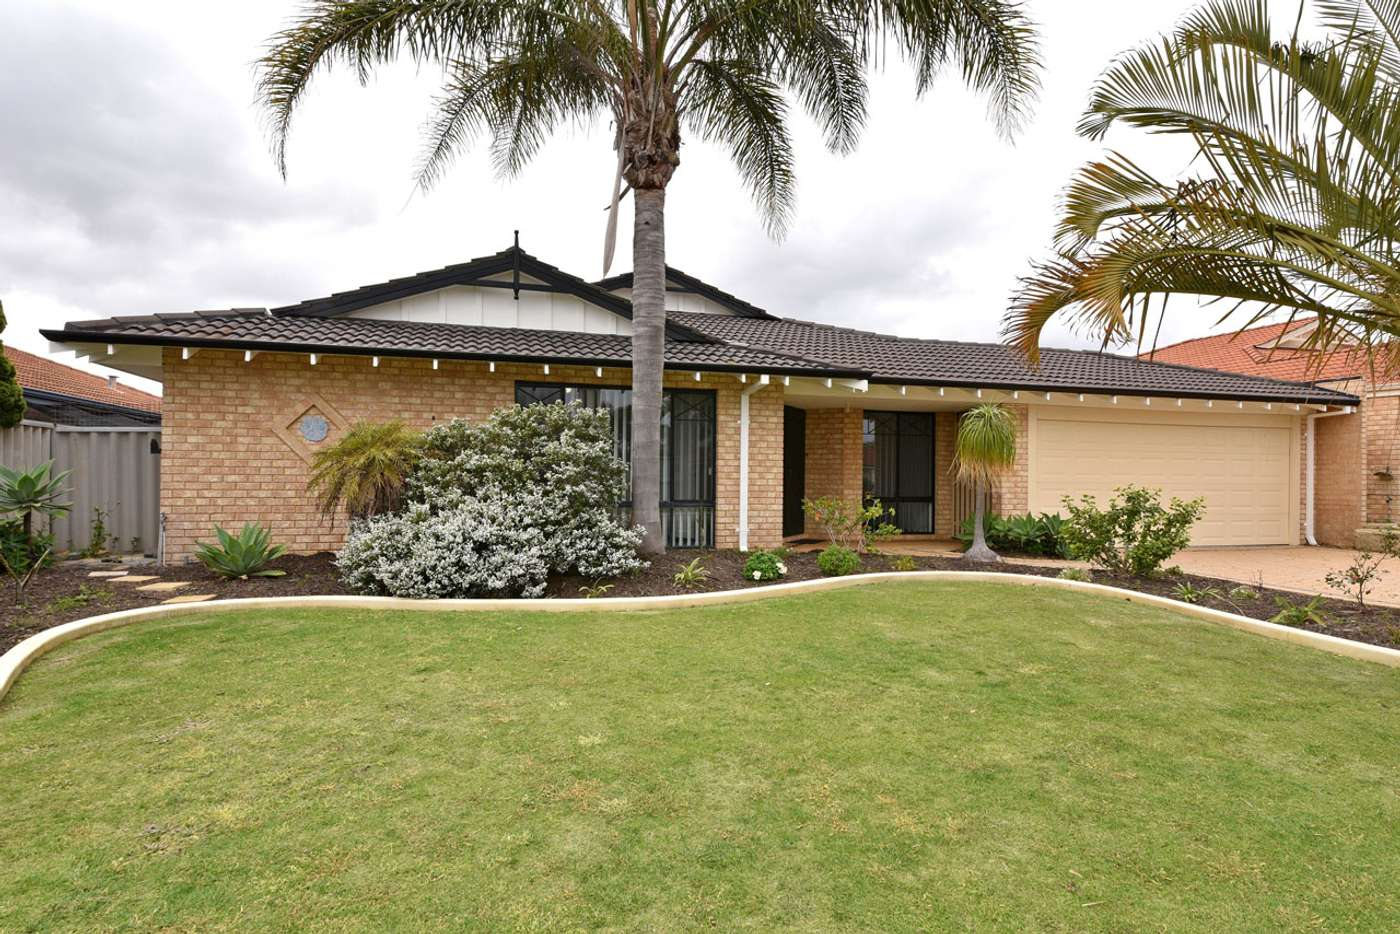 Main view of Homely house listing, 28 Craignish Loop, Kinross WA 6028